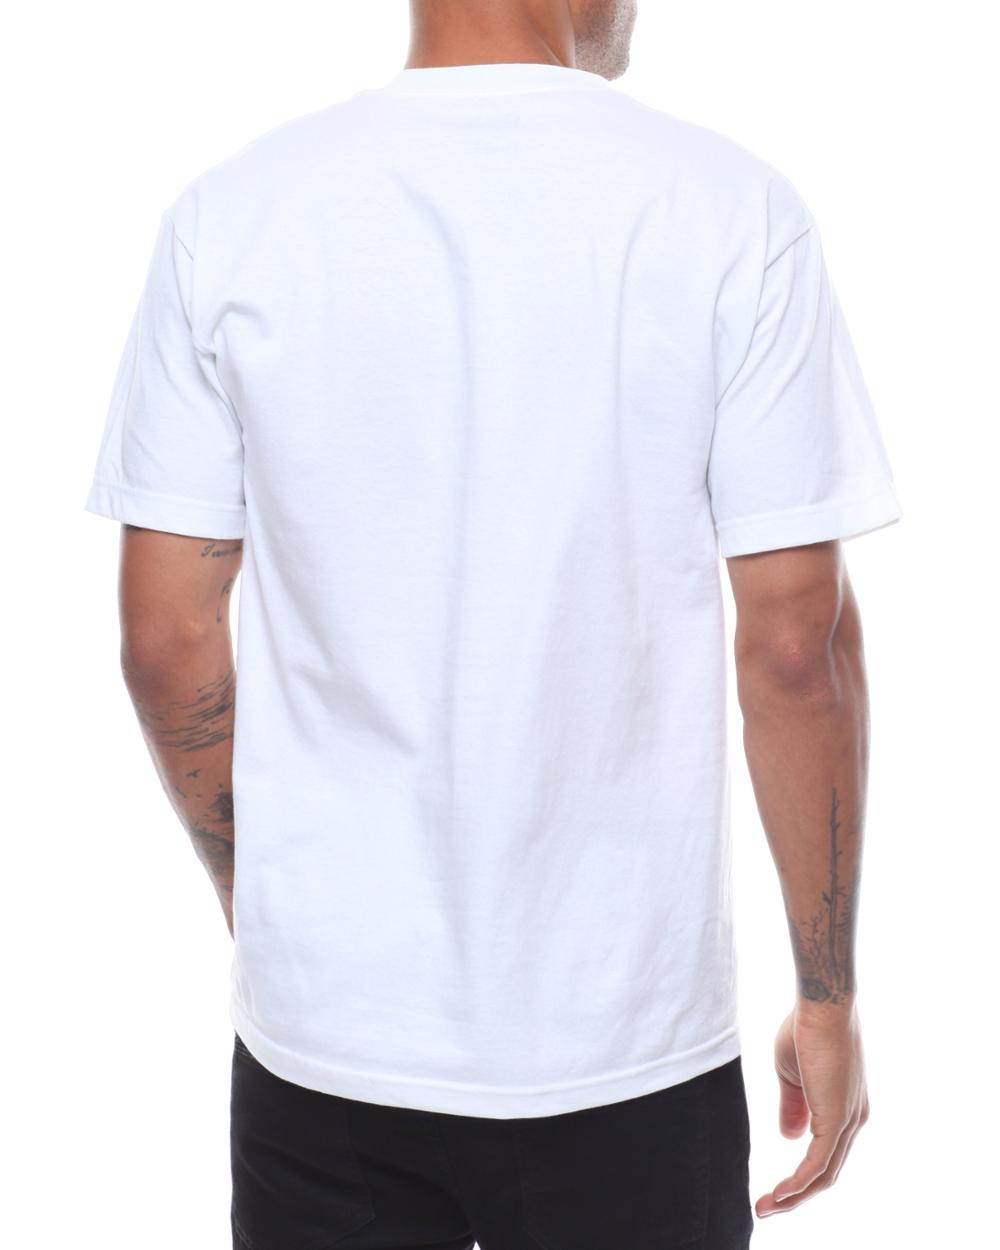 Wellone design your own OEM 100% cotton crew neck man DTG full color digital printing white custom tshirt manufacturers